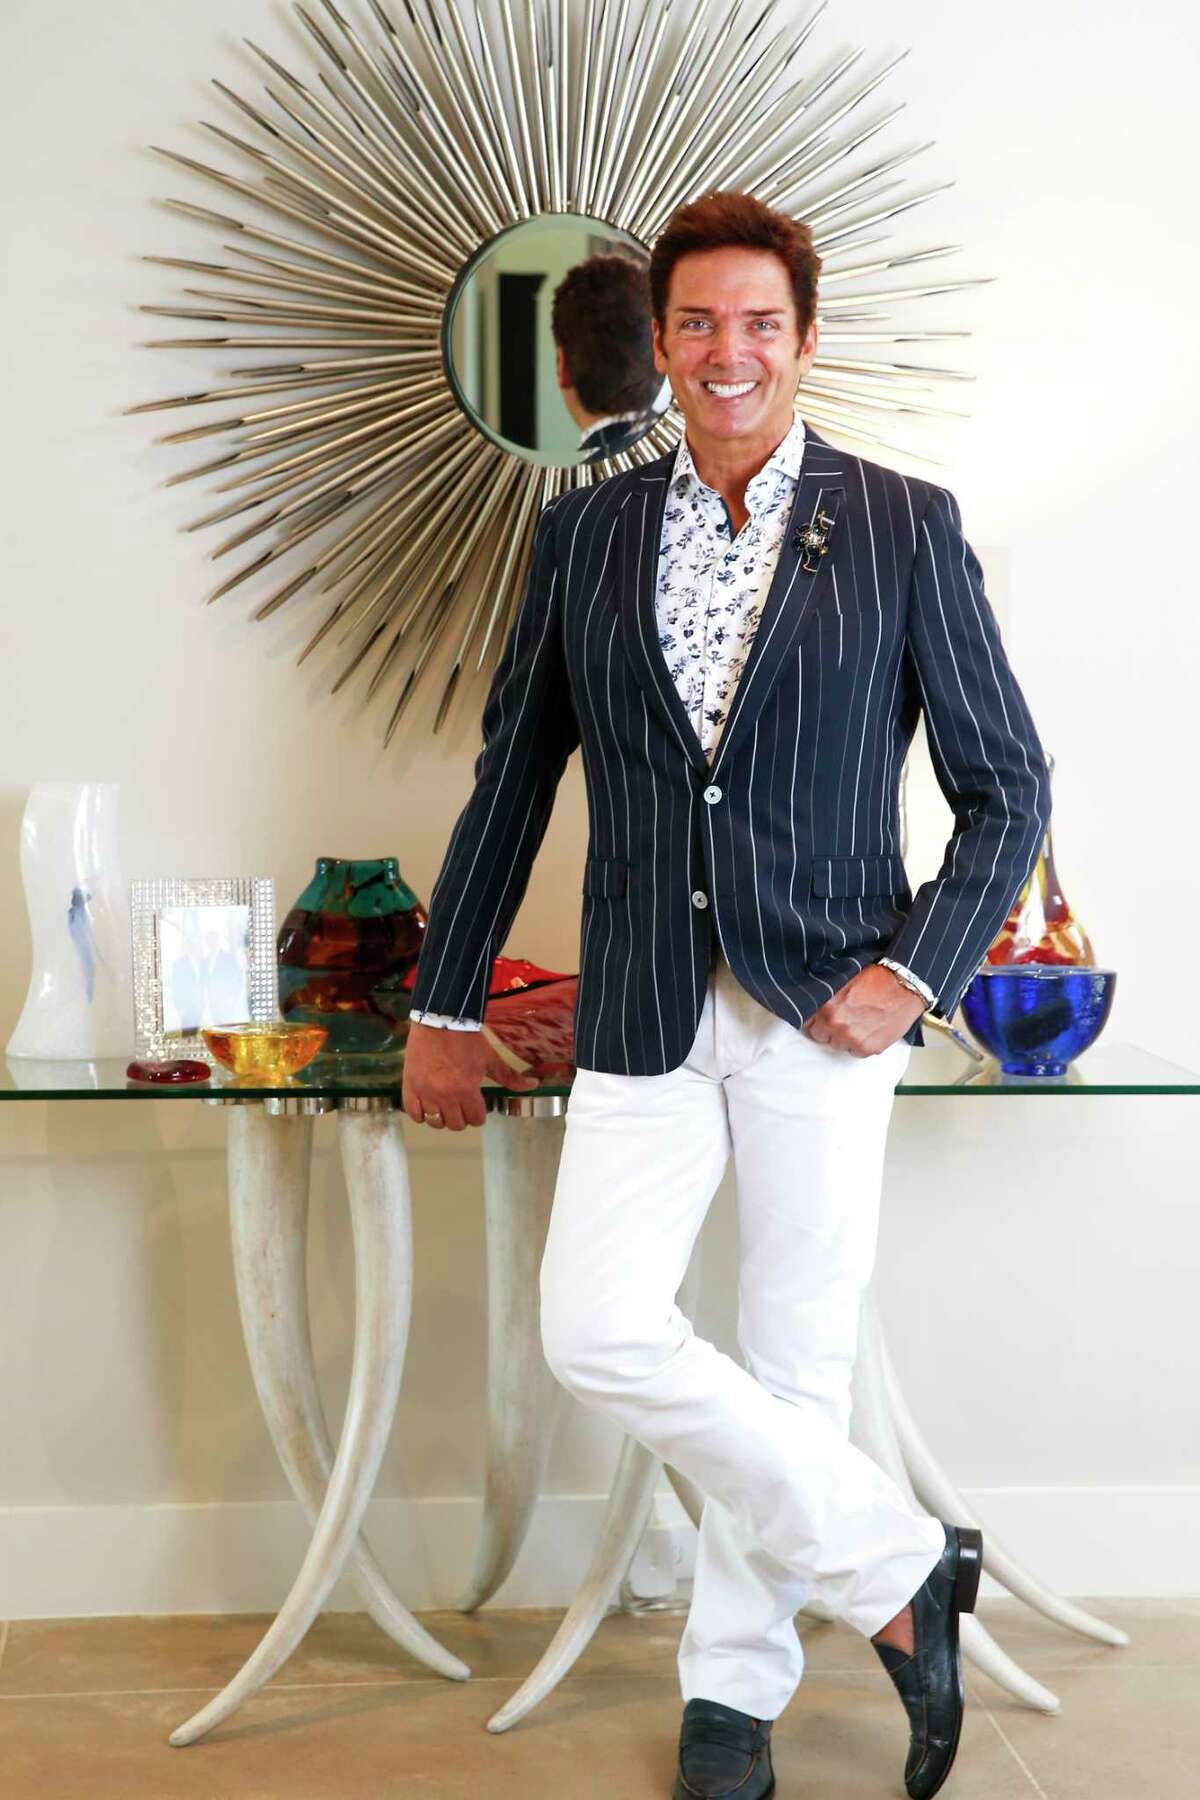 Style profile on Lenny Matuszewski, veteran fashion show producer who began his career as a model traveling throughout the United States and Europe working for such fashion designers as Calvin Klein, Perry Ellis, Giorgio Armani, Dolce & Gabbana, Hugo Boss, Missoni and many others. In his Houston home on Wednesday, Aug. 7, 2019 in Houston.